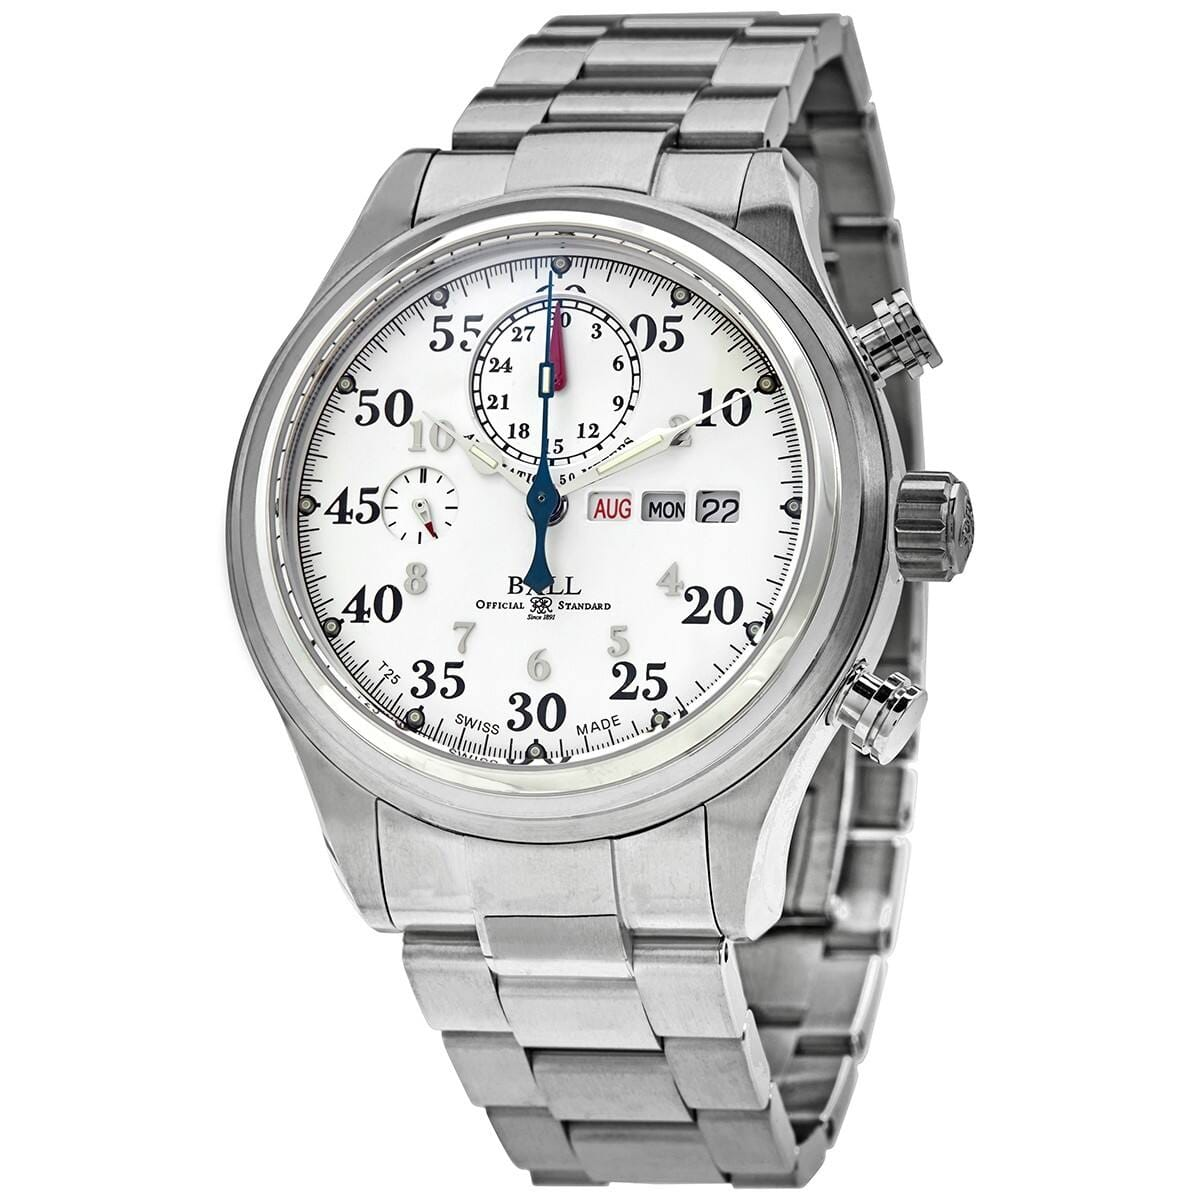 BALL Trainmaster Racer Automatic White Dial Steel Men's Watch $1195 + FS